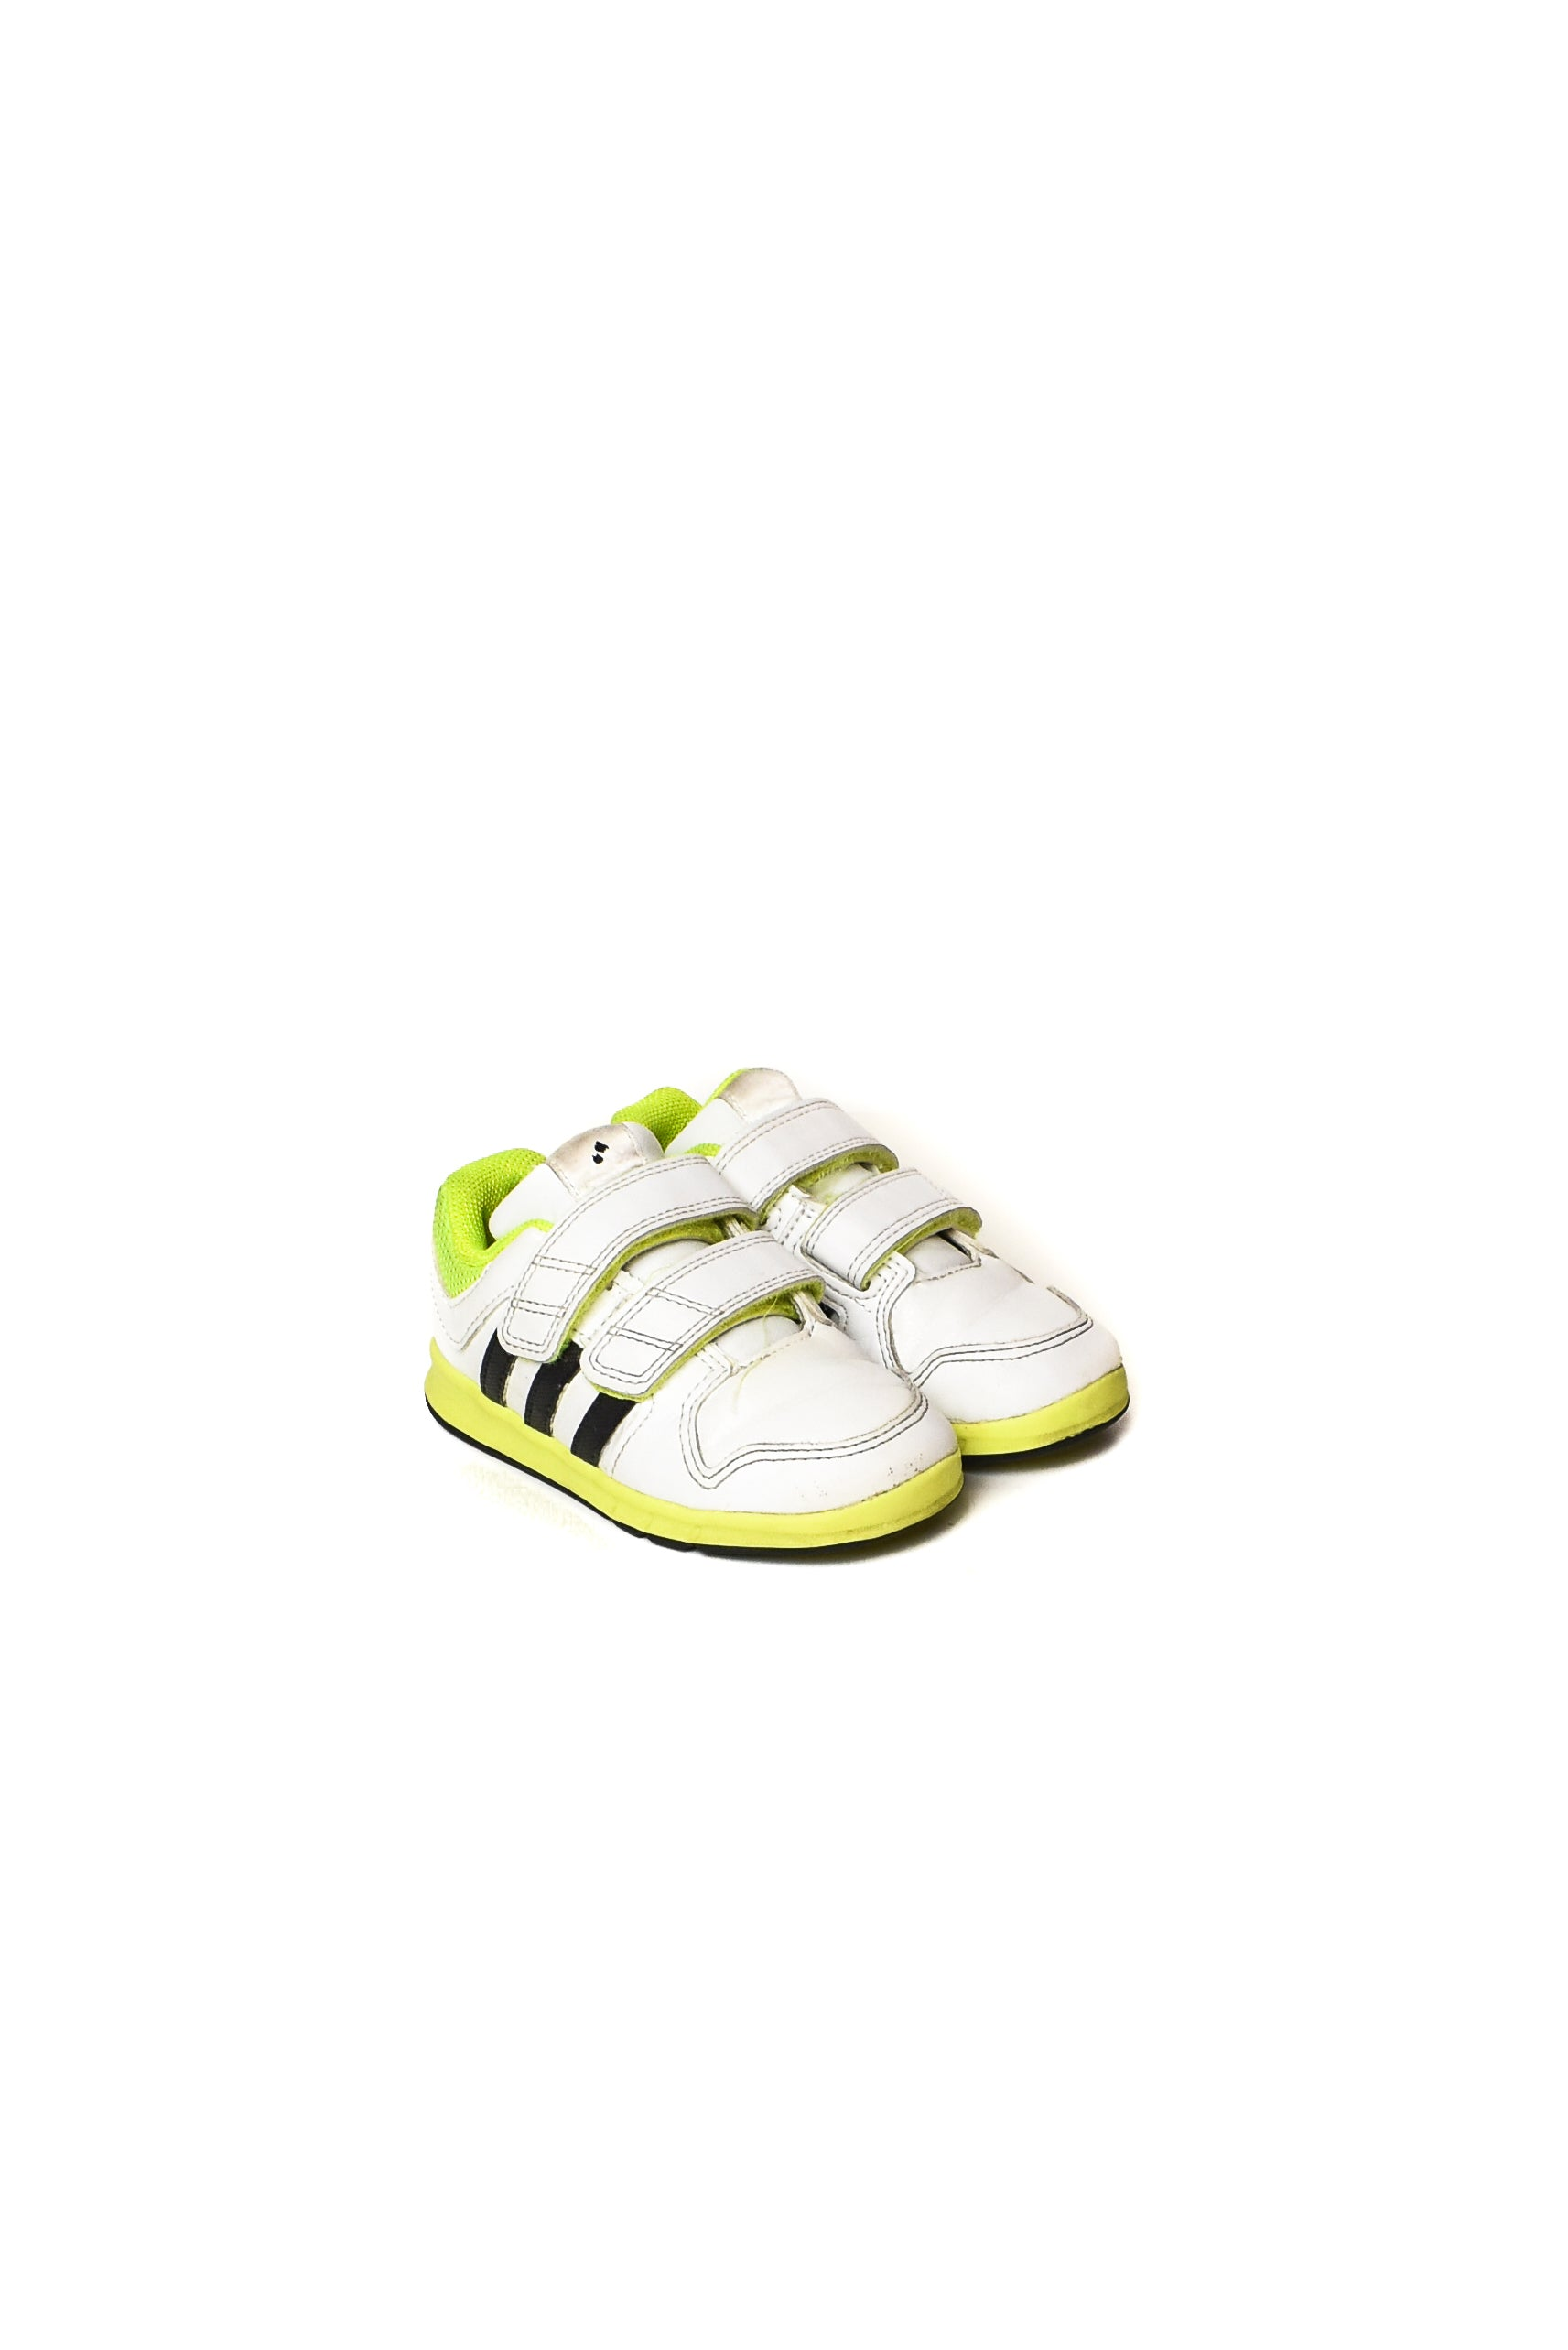 10008521 Adidas Baby~ Shoes 3T (EU 24) at Retykle